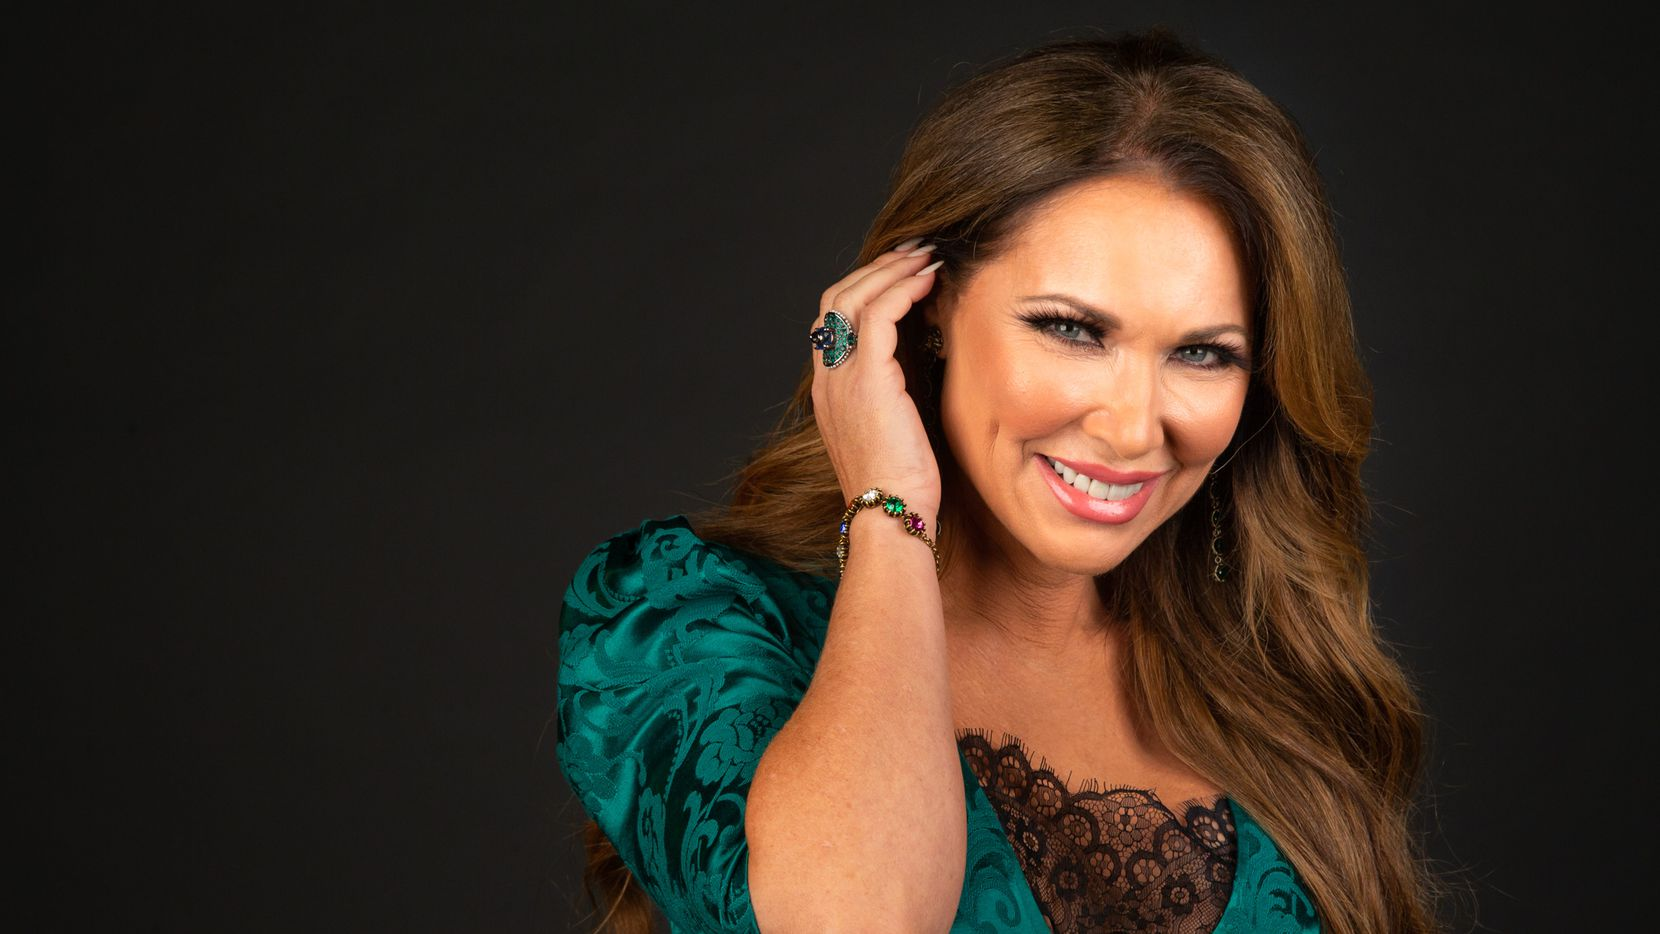 'Real Housewives of Dallas' cast member LeeAnne Locken was on the Bravo TV show for four seasons. She's said publicly she won't return for another season.